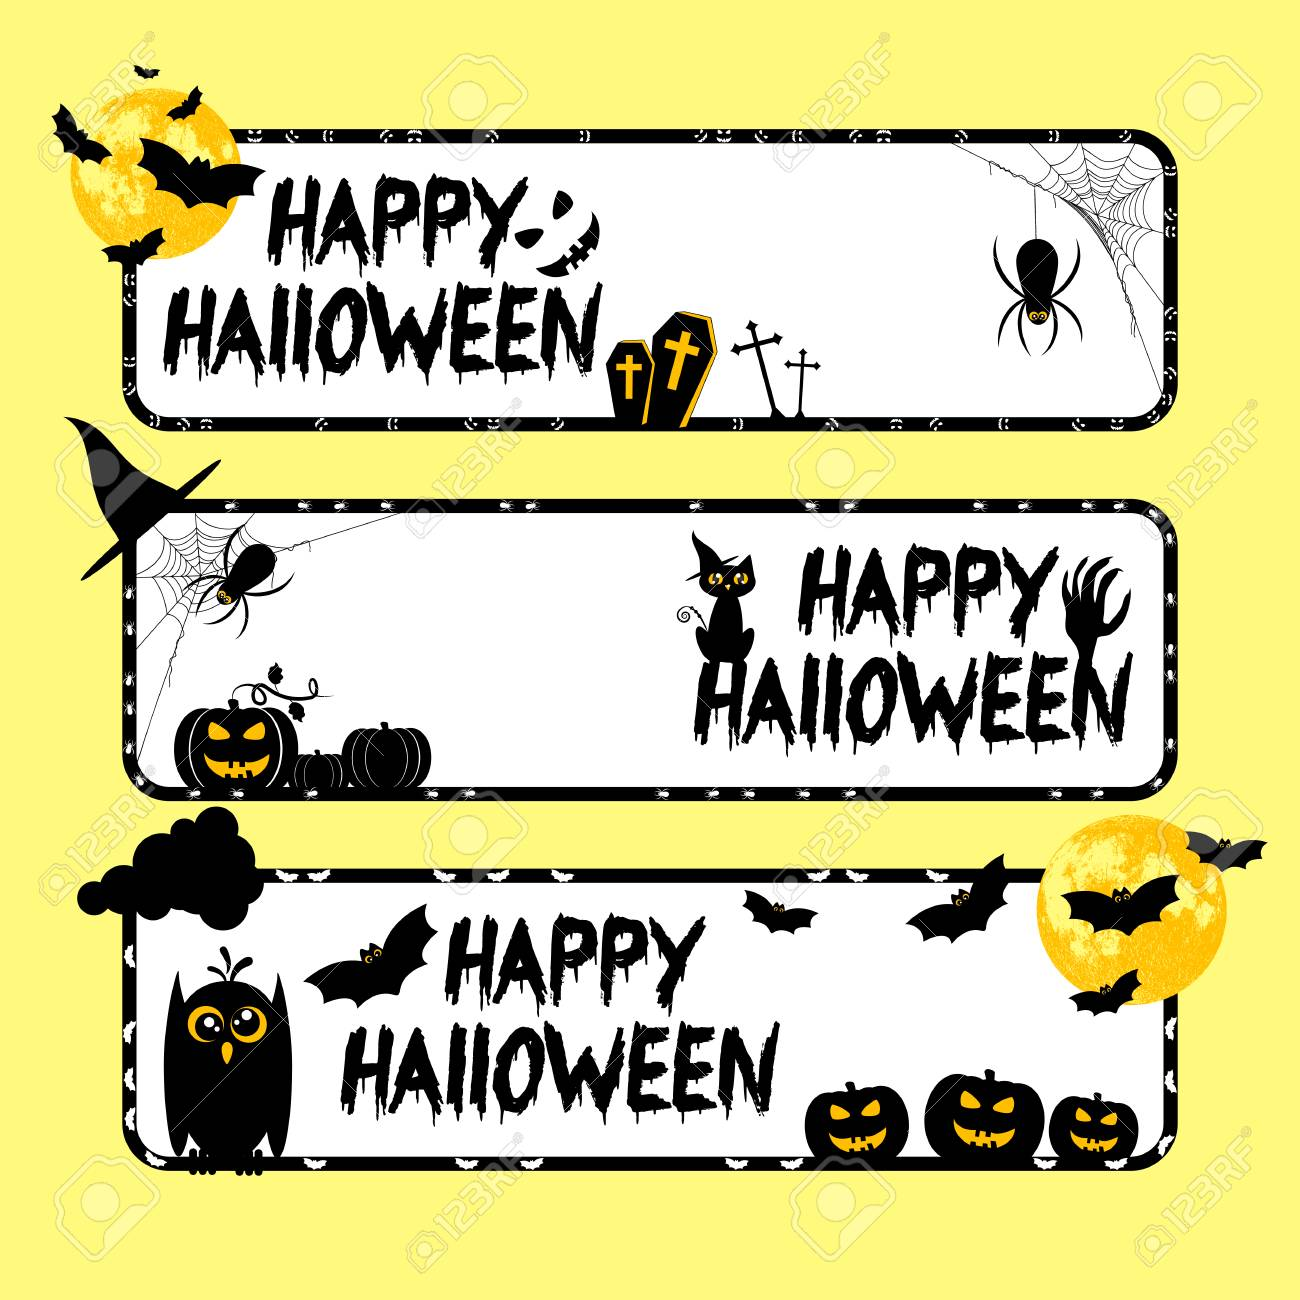 Holiday Banners On Theme Of Halloween. Black Frames With Pumpkins ...